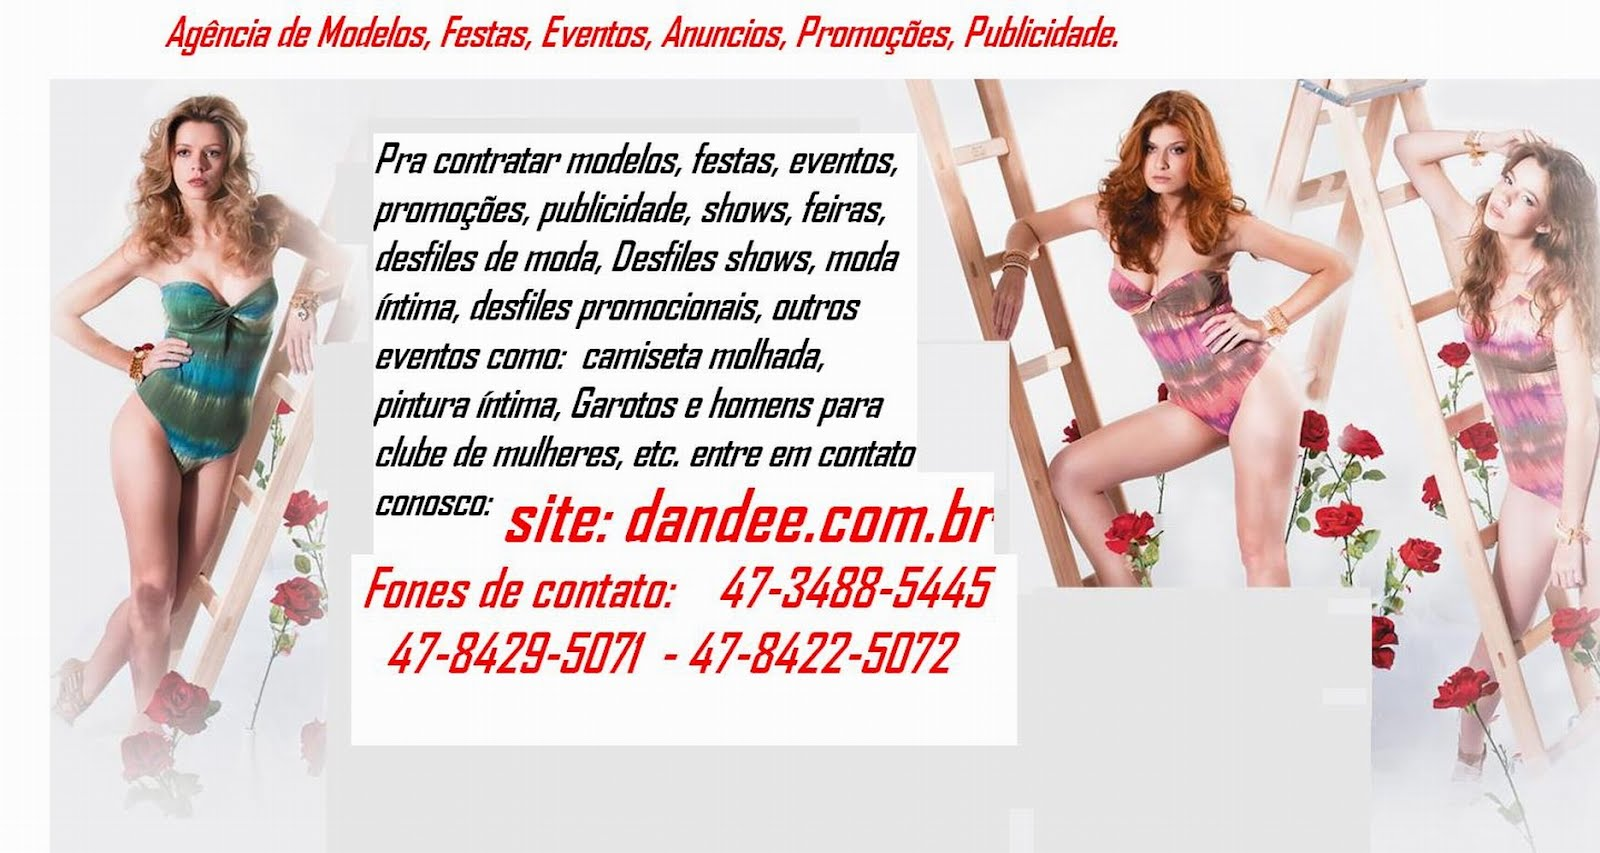 Nice sexo na web gratis those